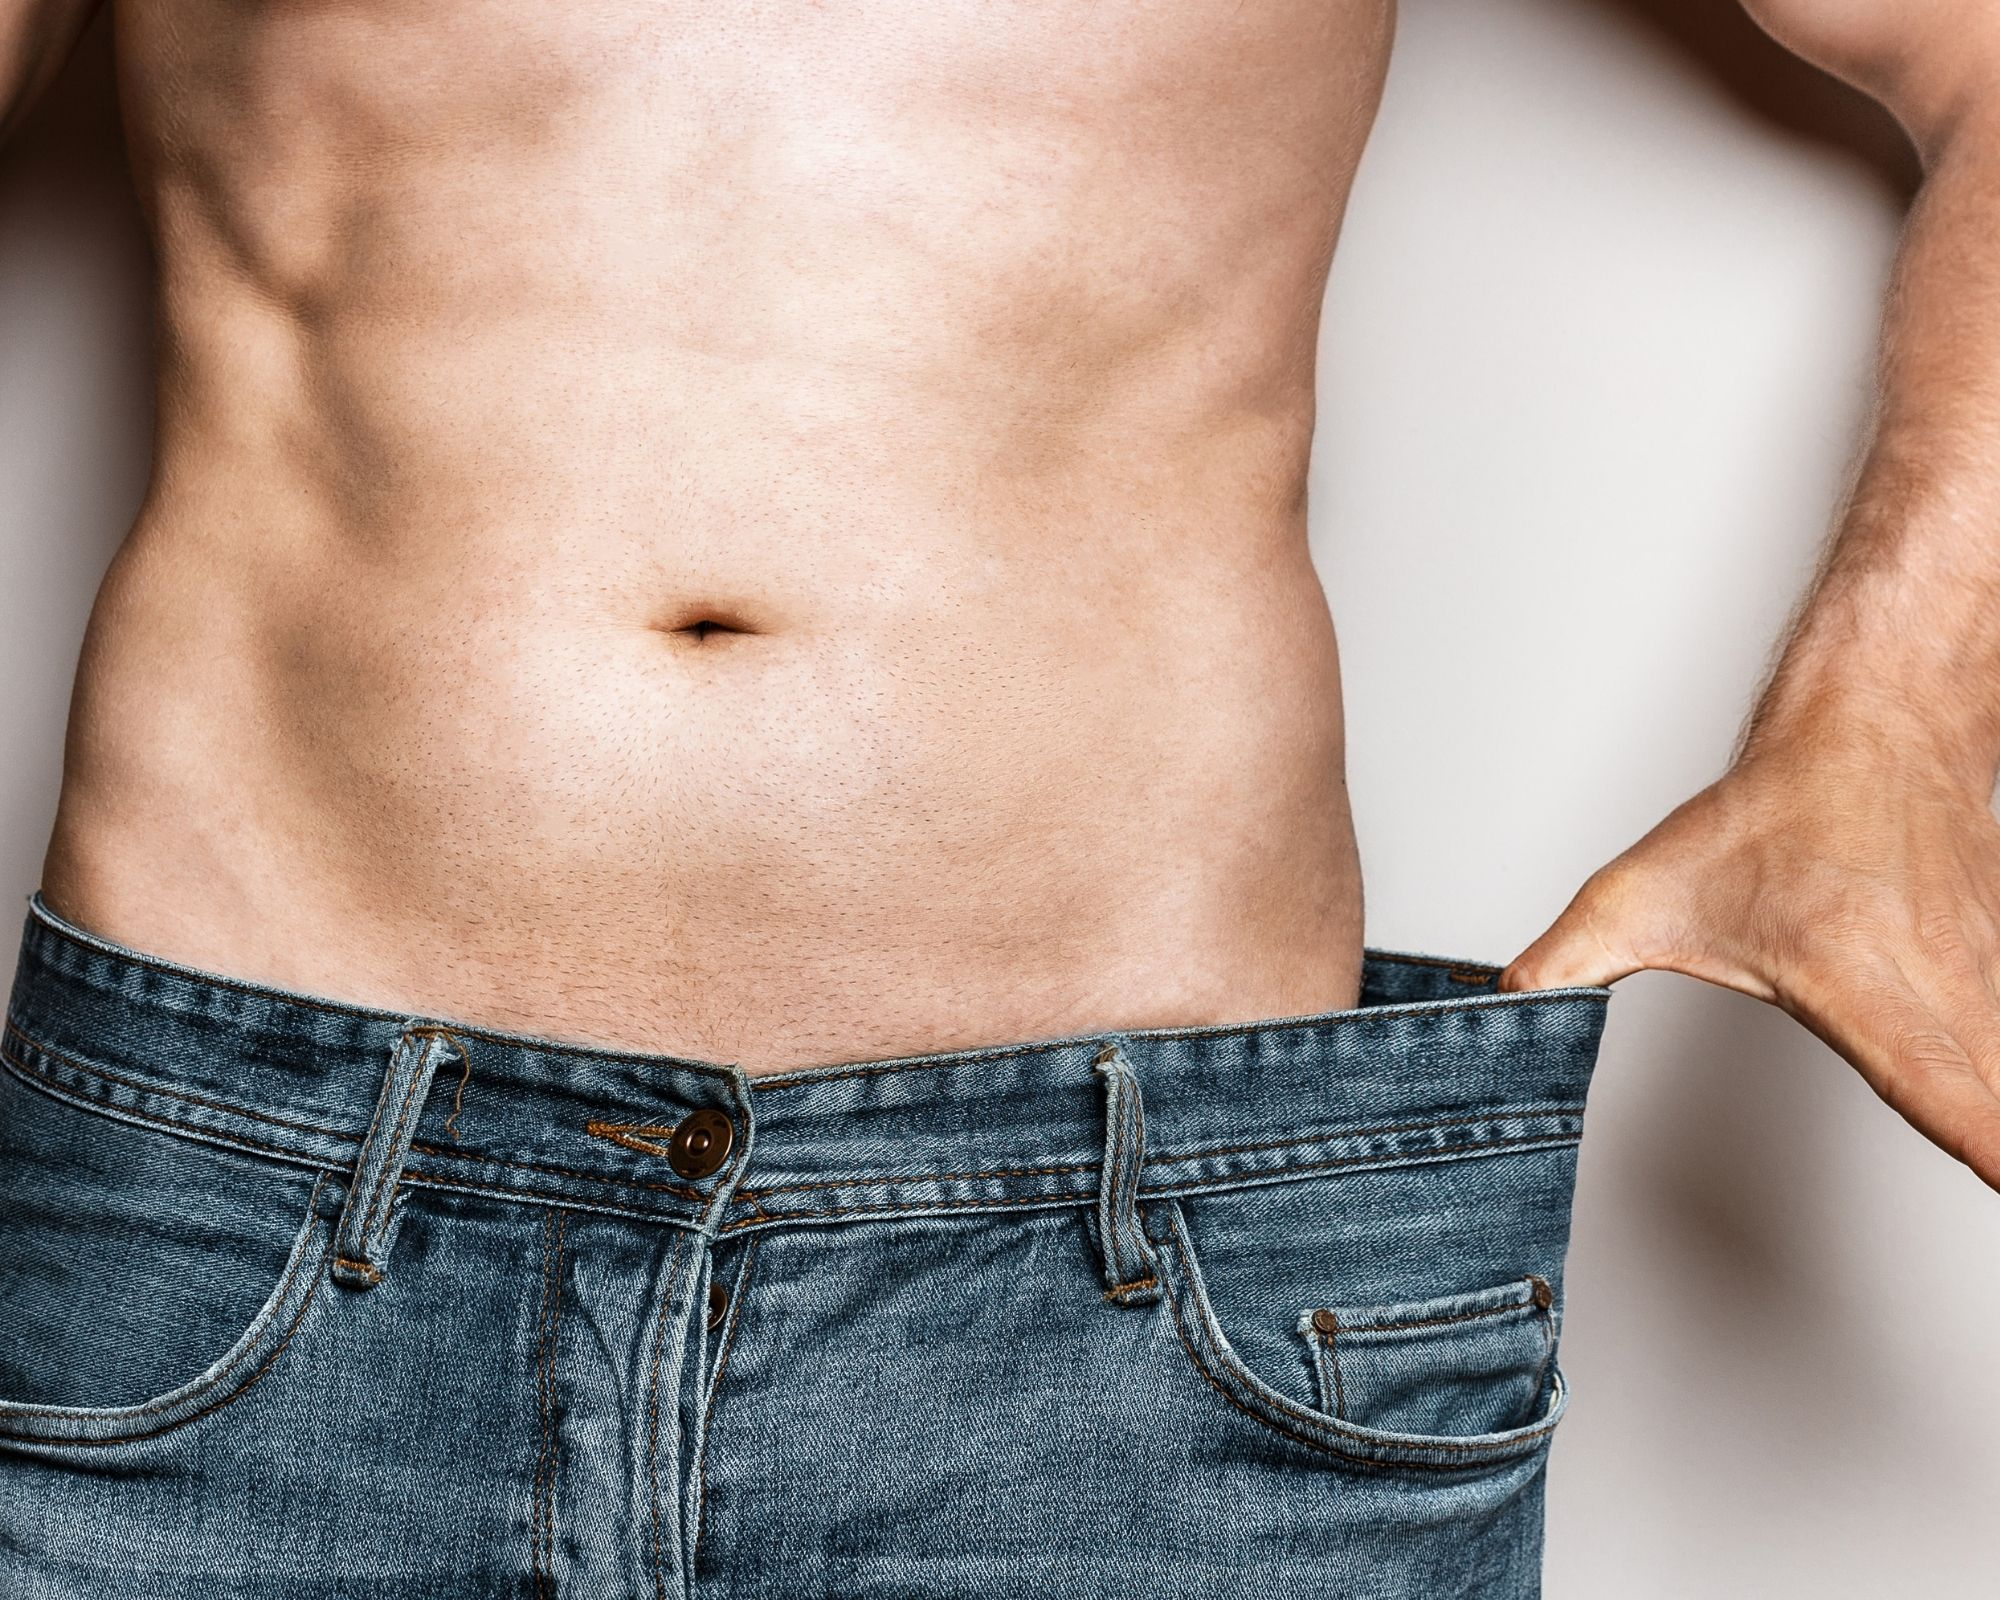 Man holding out pants to show weight loss from healthy nutrients